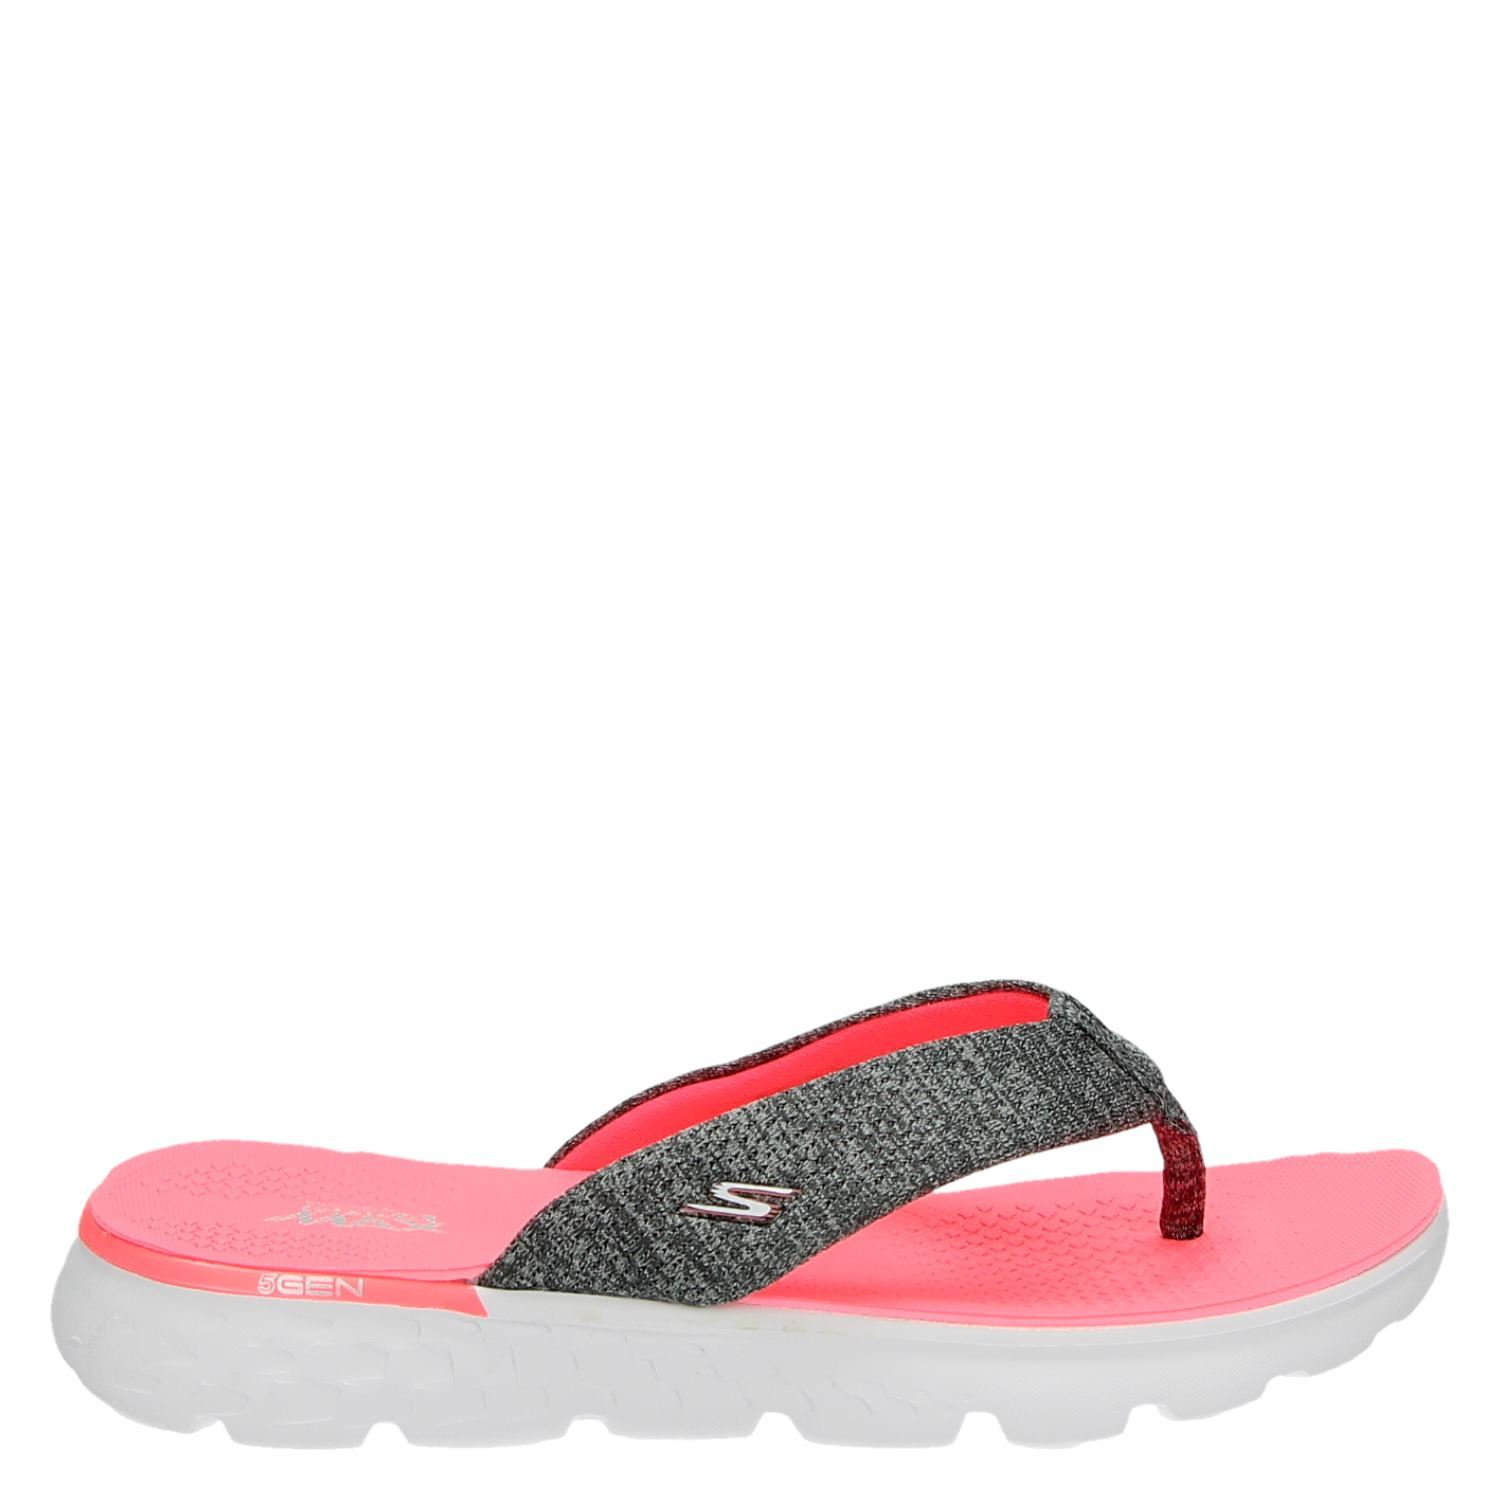 Skechers Dames Skechers Dames Slippers Grijs